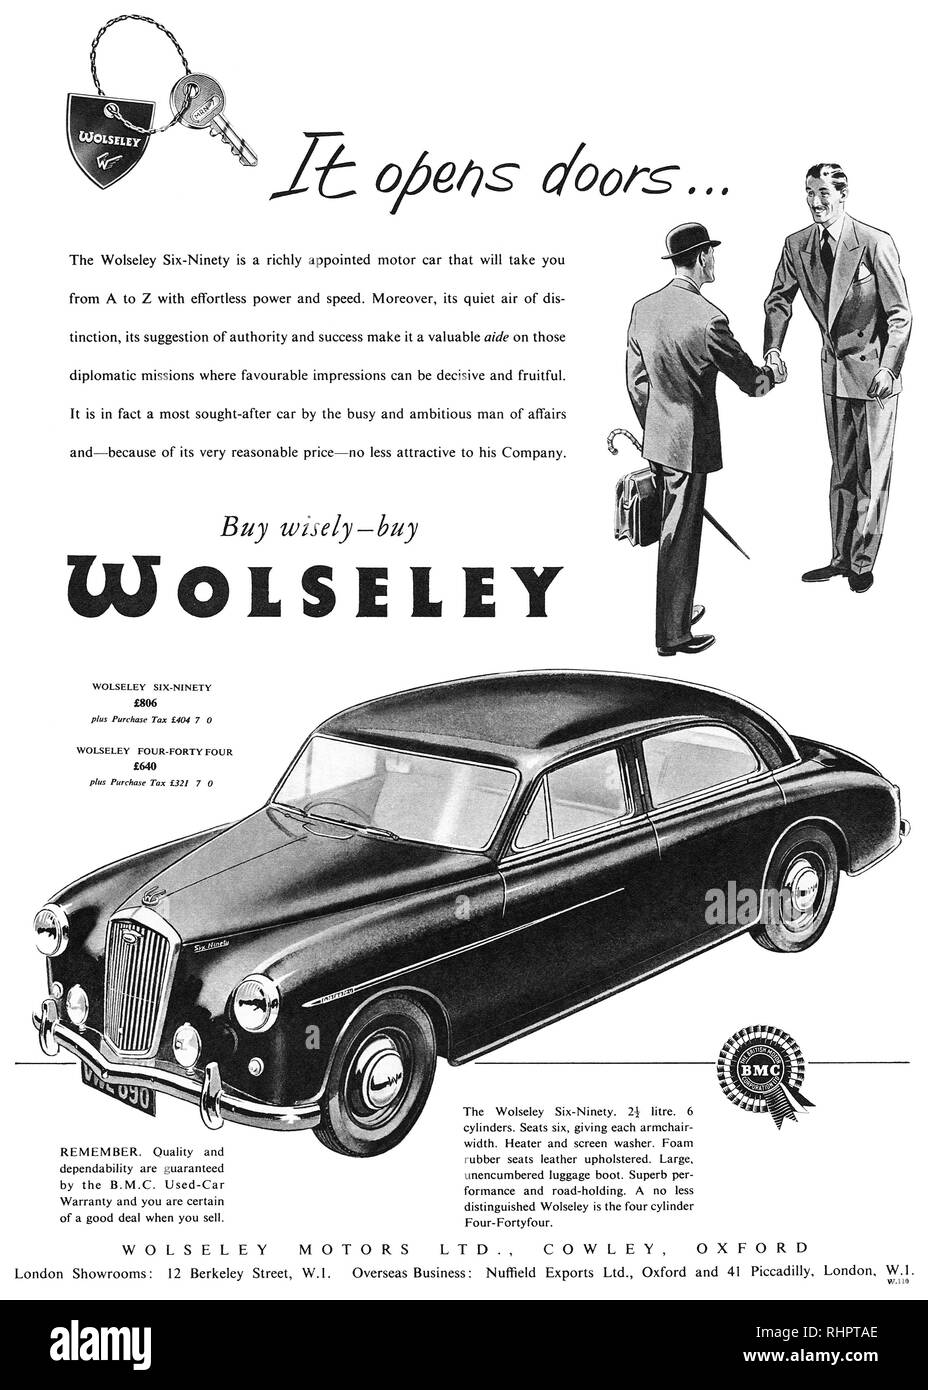 Vehicle Parts & Accessories Old Wolseley Car Badge Exquisite Craftsmanship;